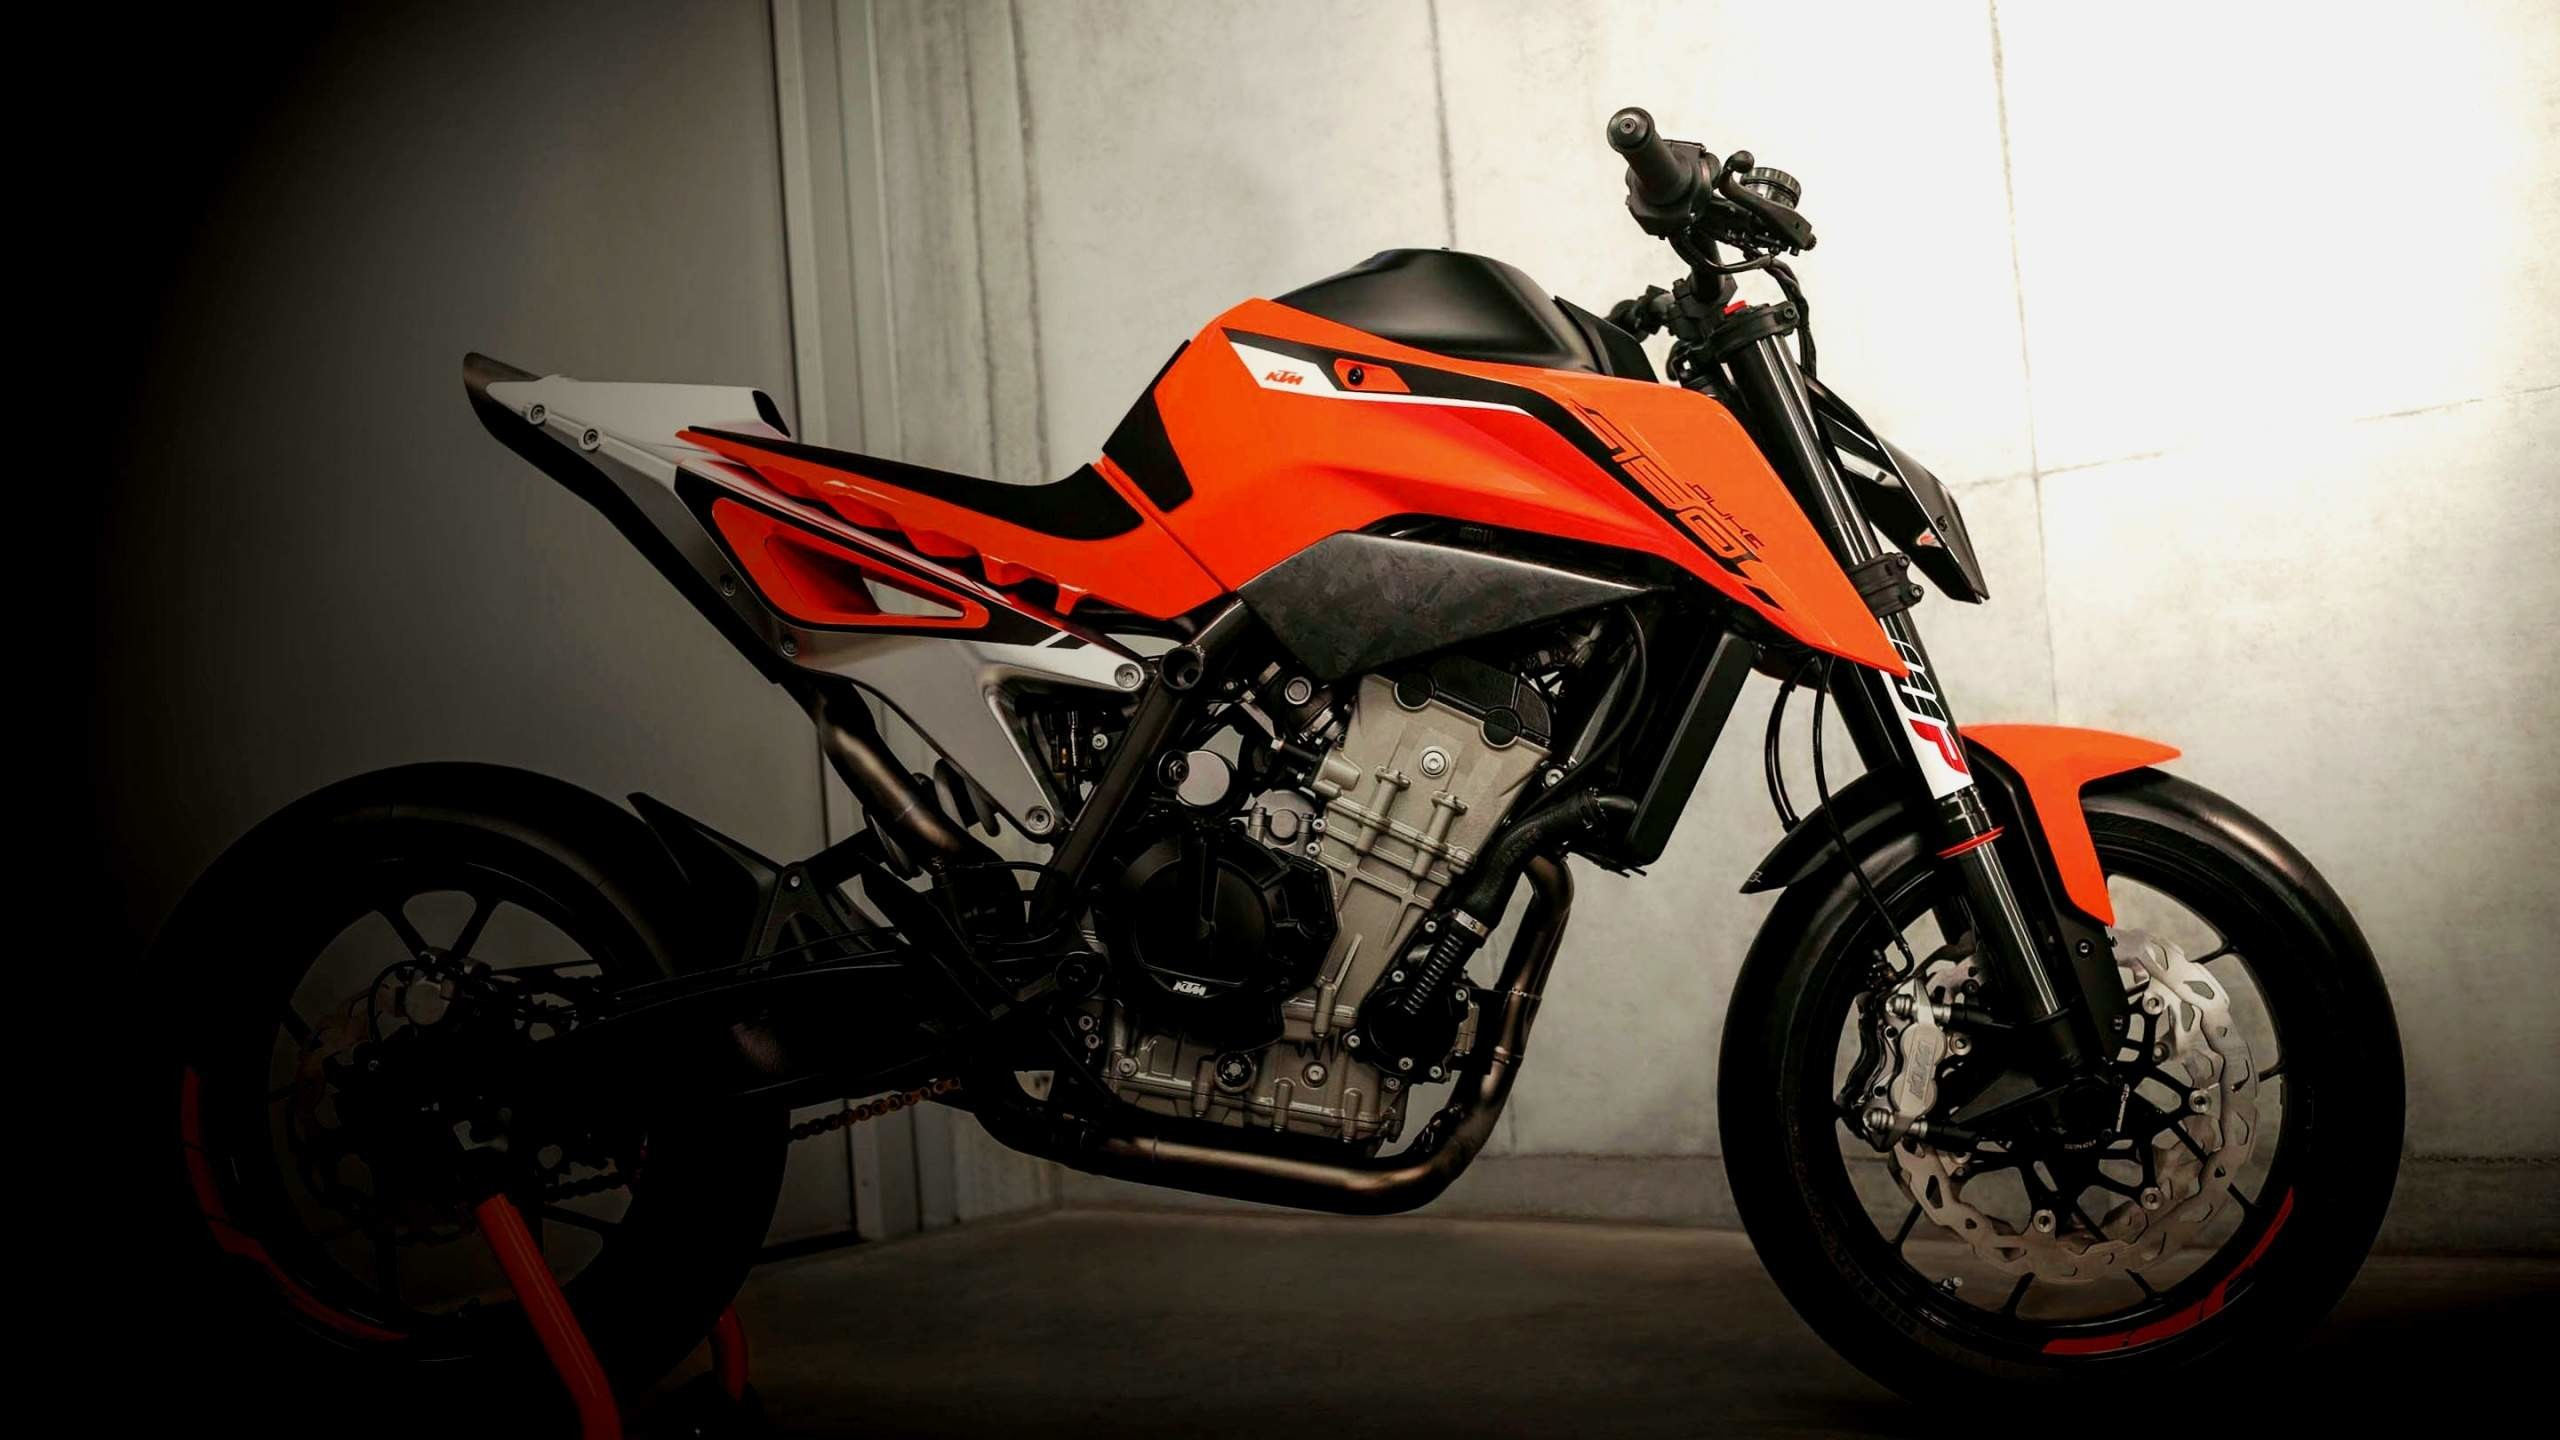 Ktm Bikes Wallpapers: Ktm Bikes Wallpapers (66+ Background Pictures